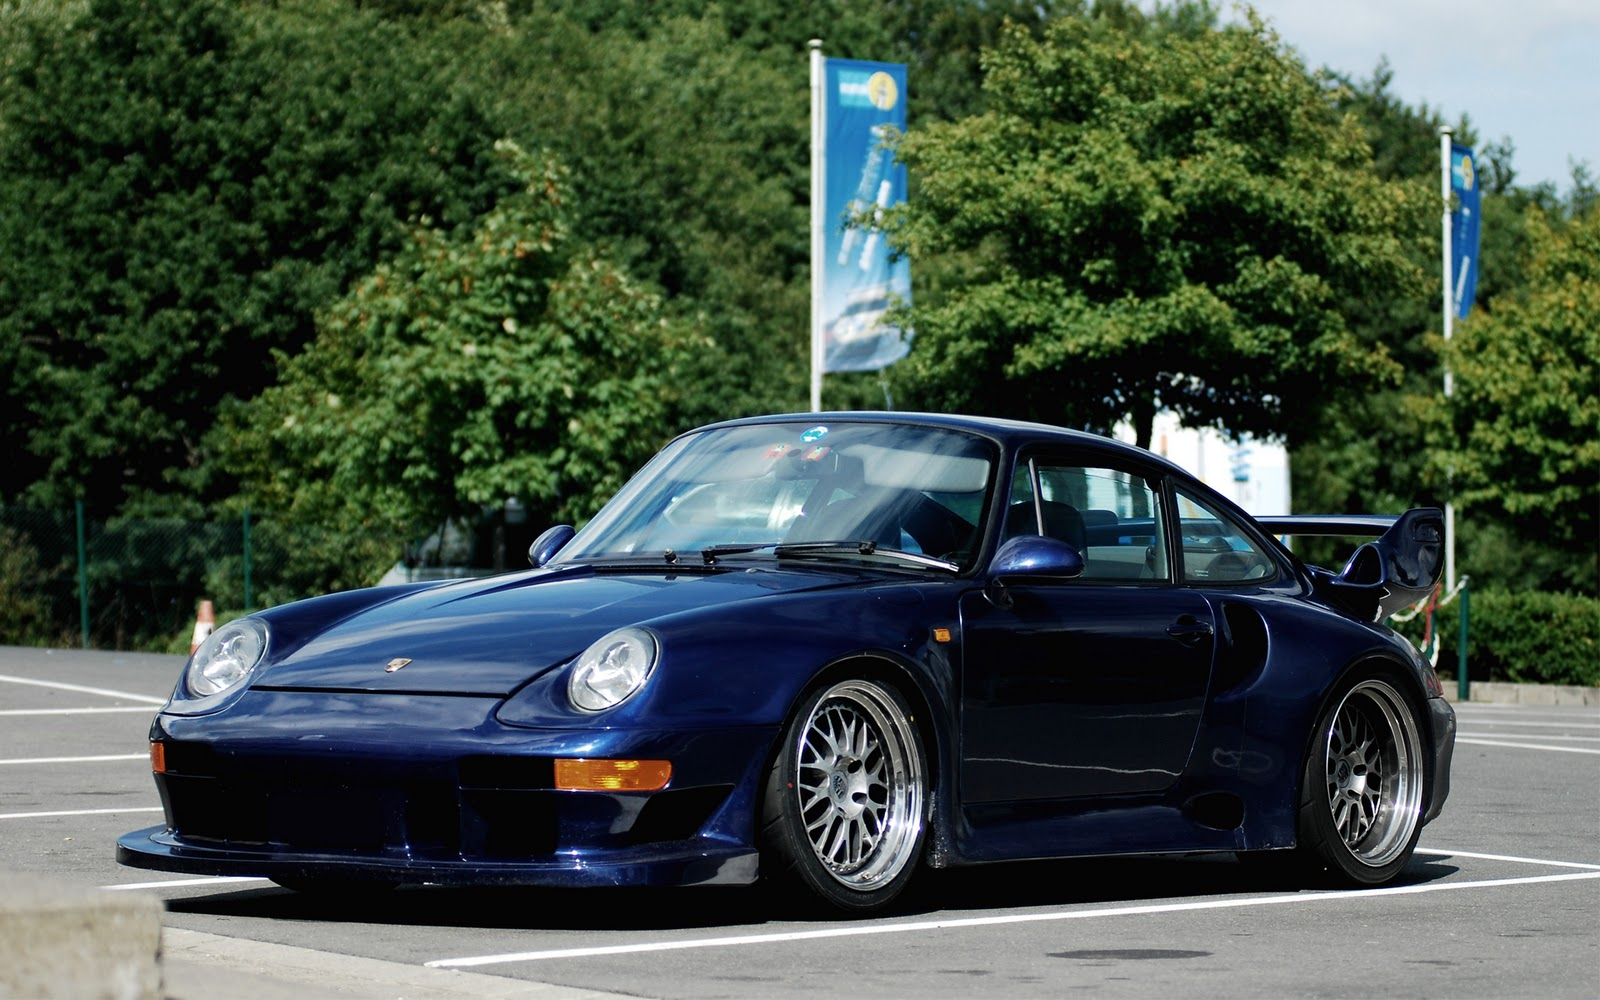 Classic Porsche 911 Rs Carrera Turbo Wallpapers Home Of